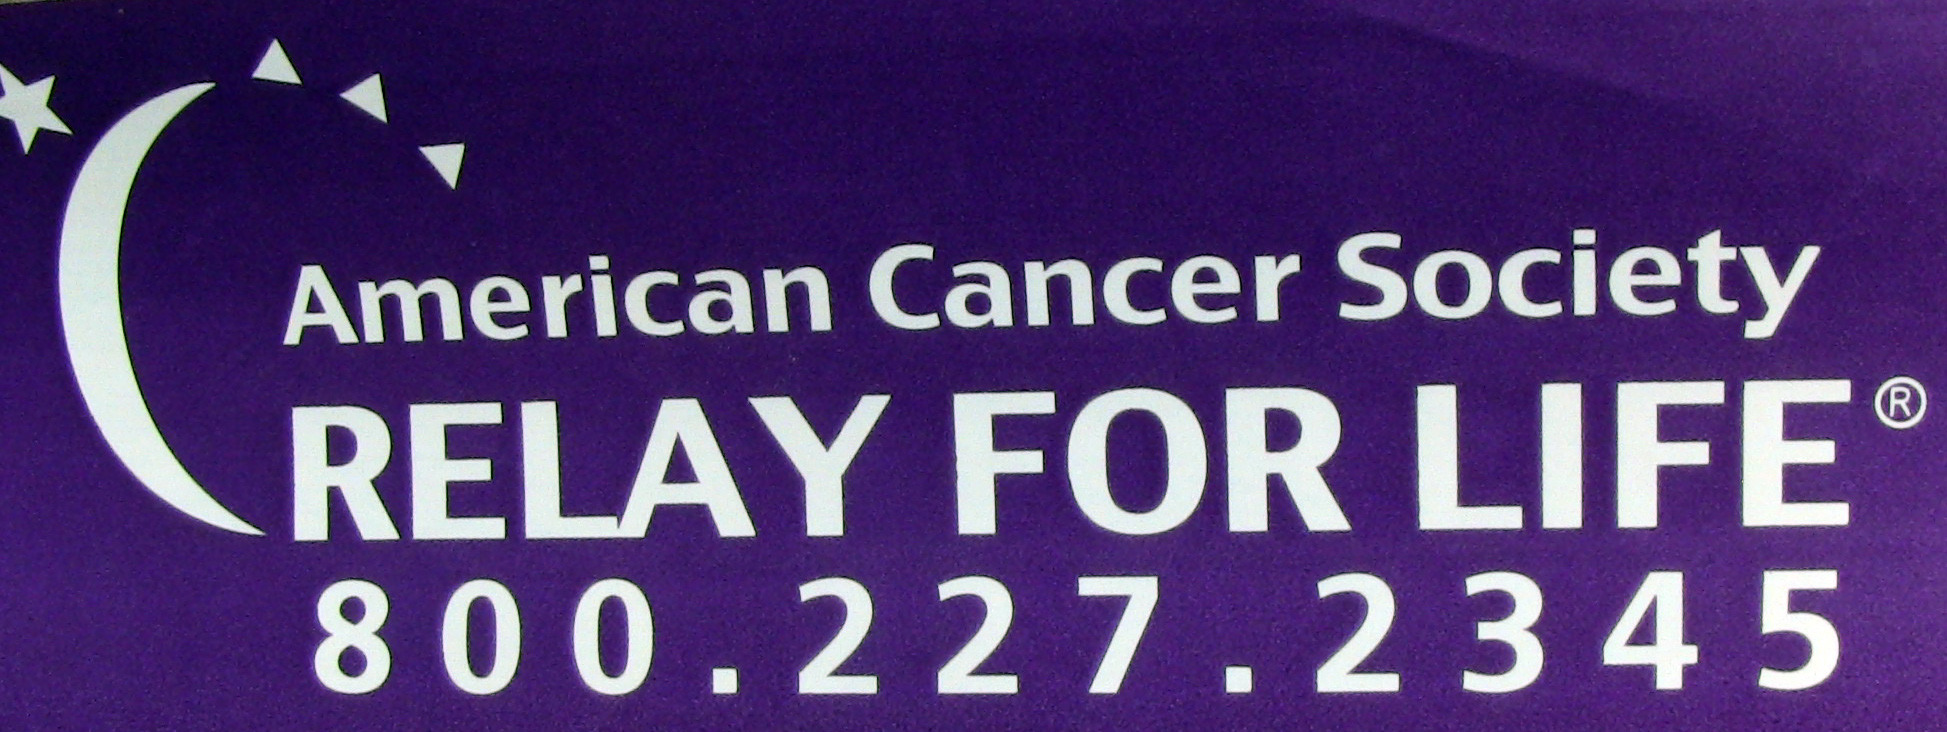 707fe496dad641a9858b_Relay_for_Life_banner.jpg